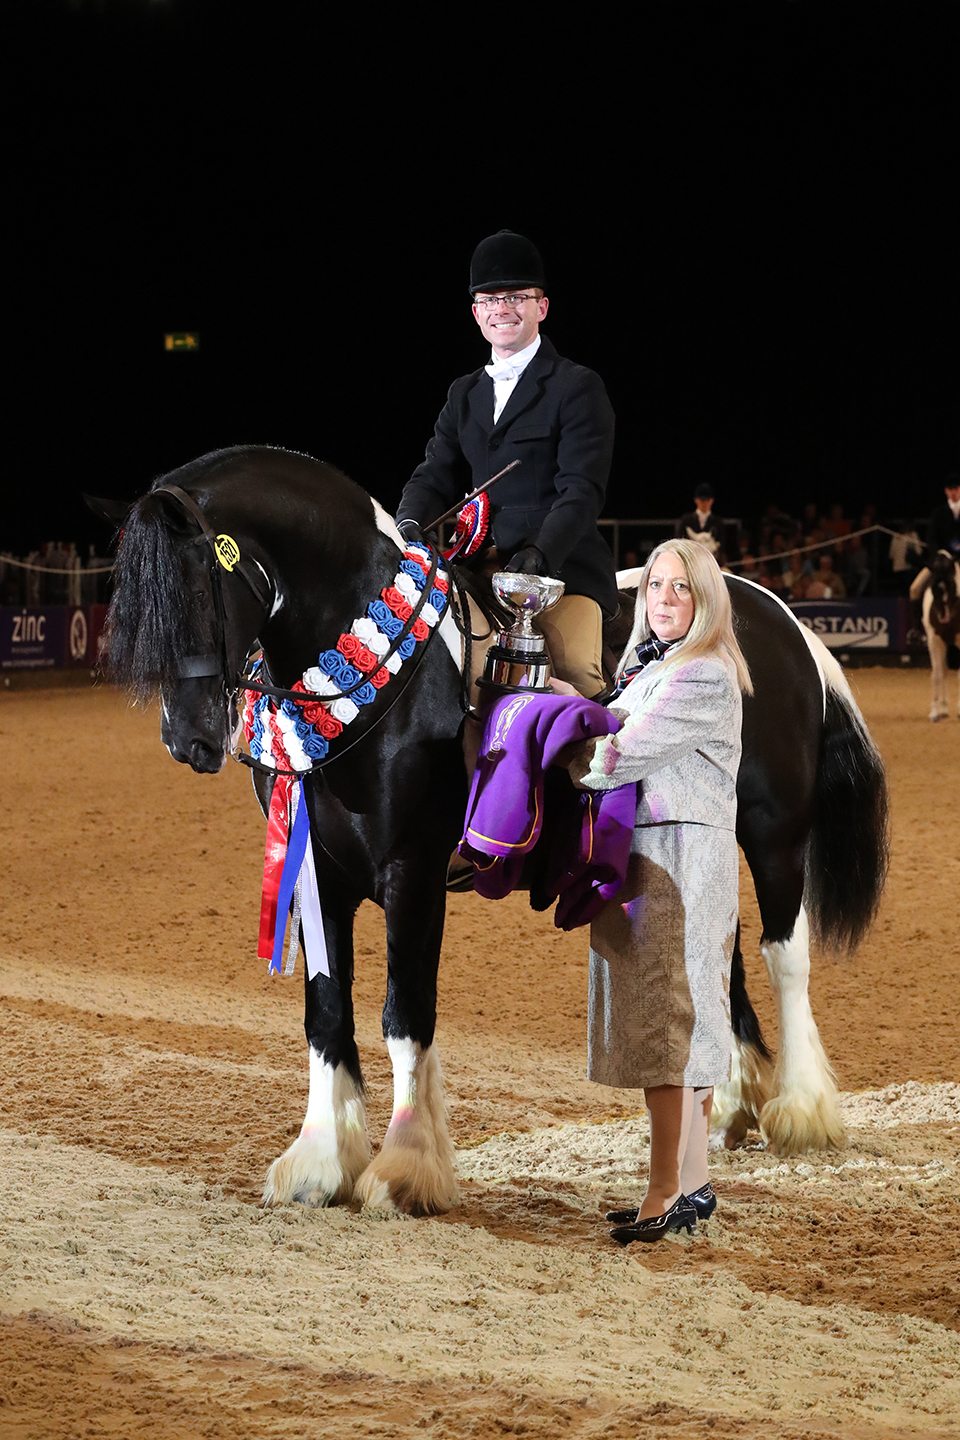 Trade Stands Hoys 2015 : News the daily bale the gaitpost